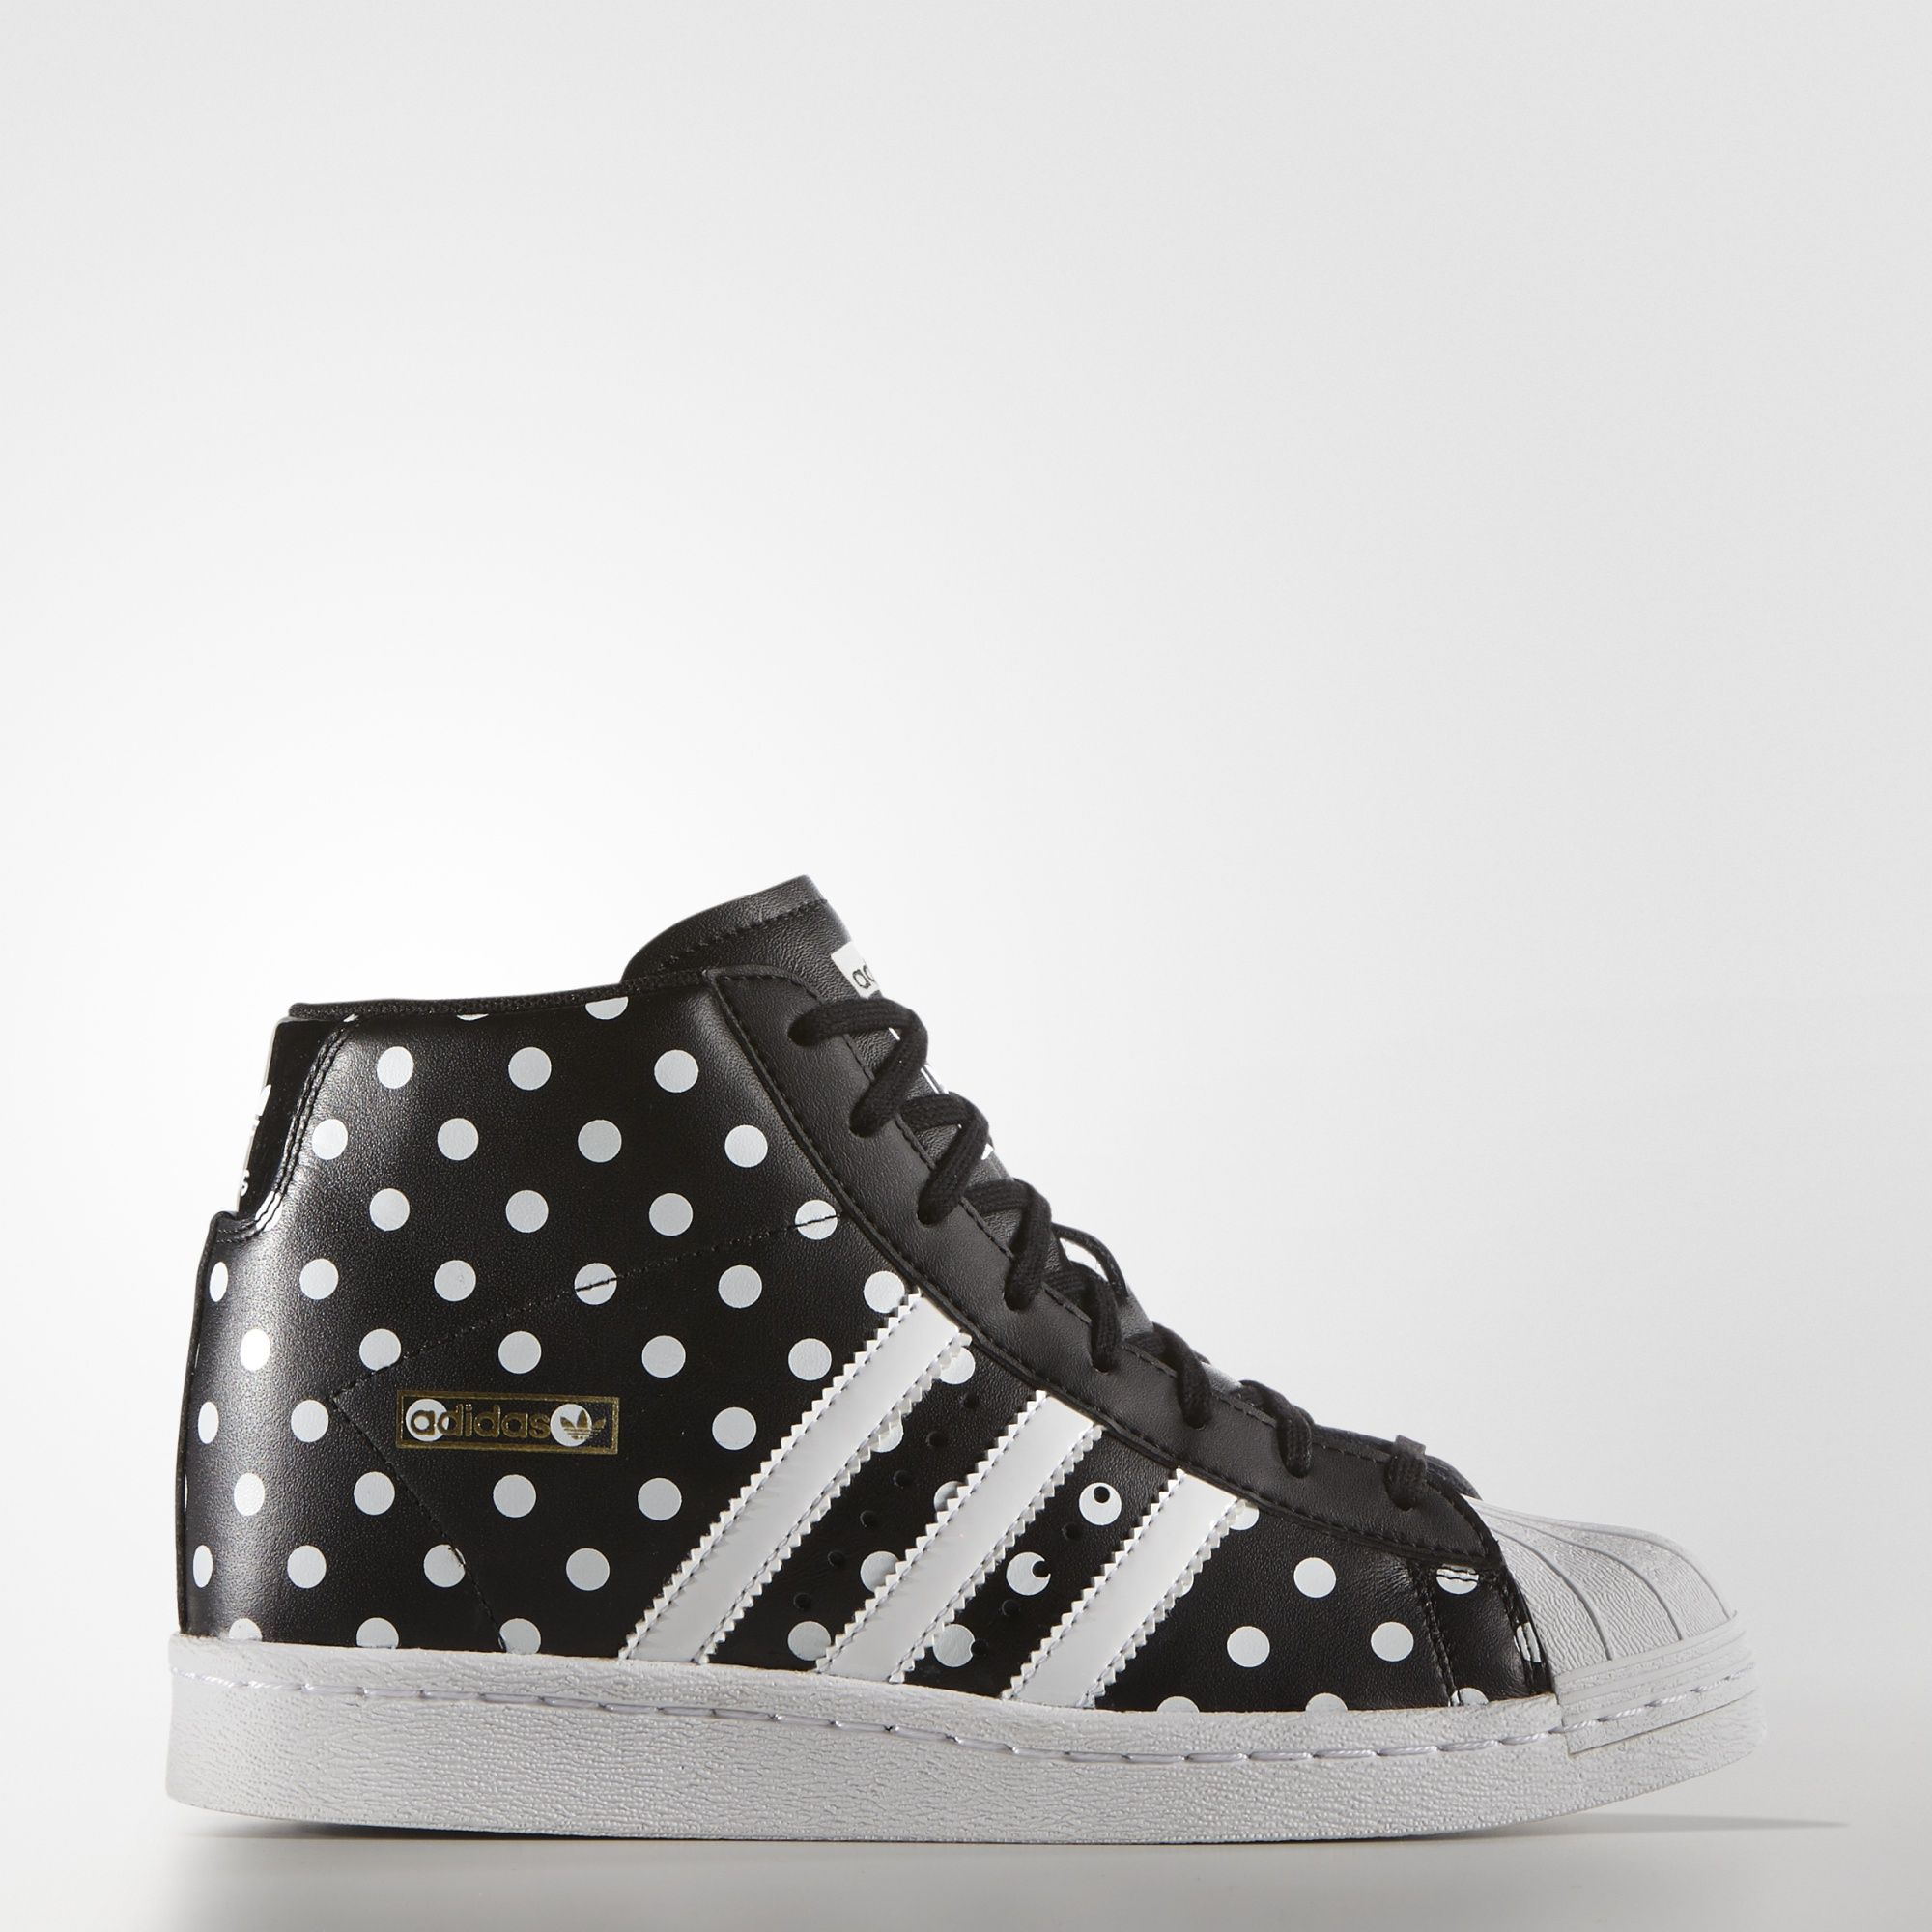 A hidden wedge heel gives soaring style to the adidas Superstar sneaker.  These women's shoes